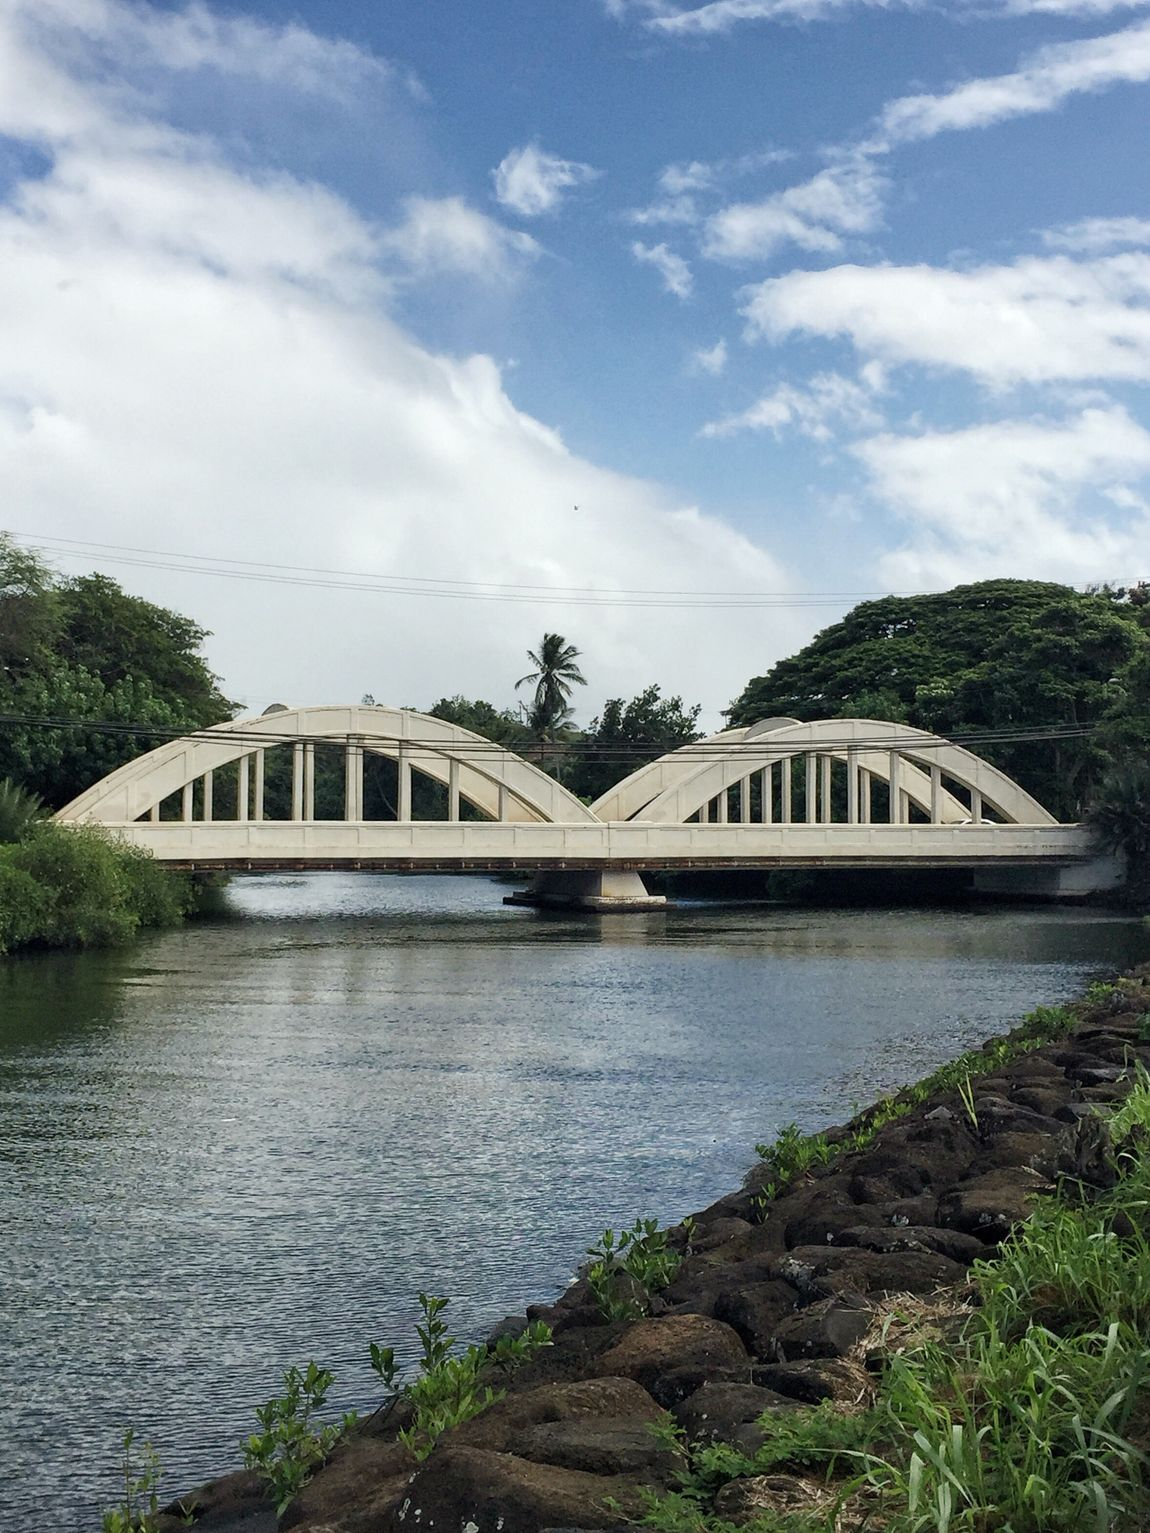 Old Haleiwa Bridge. Outdoors Photograpghy  Hawaii Travel Destinations Travel Travel Photography Found On The Roll Trees And Sky Water Park Bridge Bridges History Historic Haleiwa Bridge, Haleiwa Hawaii